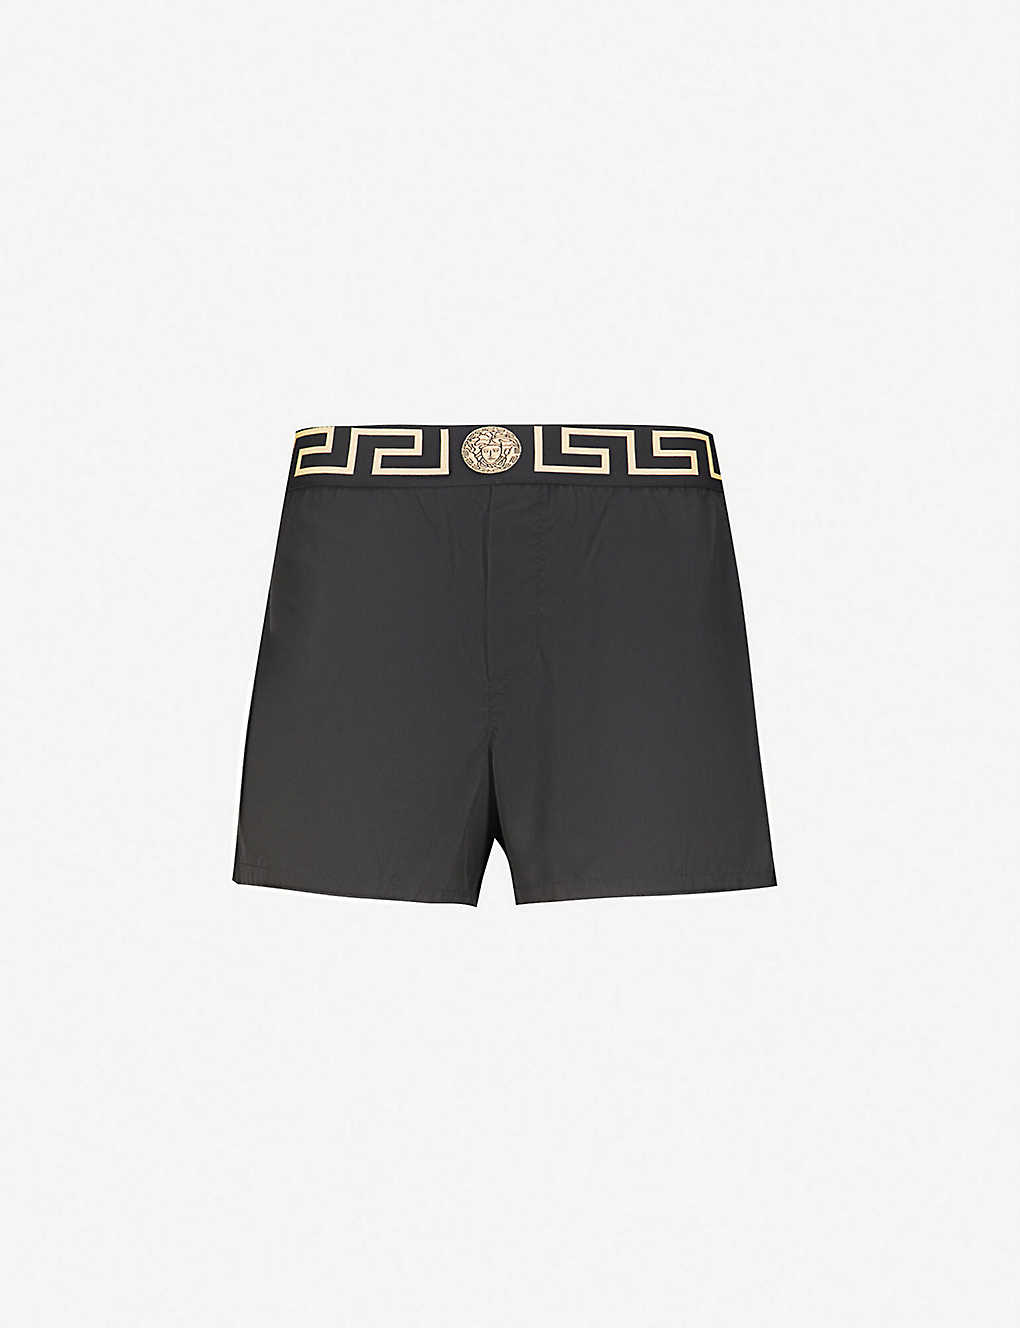 cc88ca7cab Iconic swim shorts zoom; Iconic swim shorts zoom ...